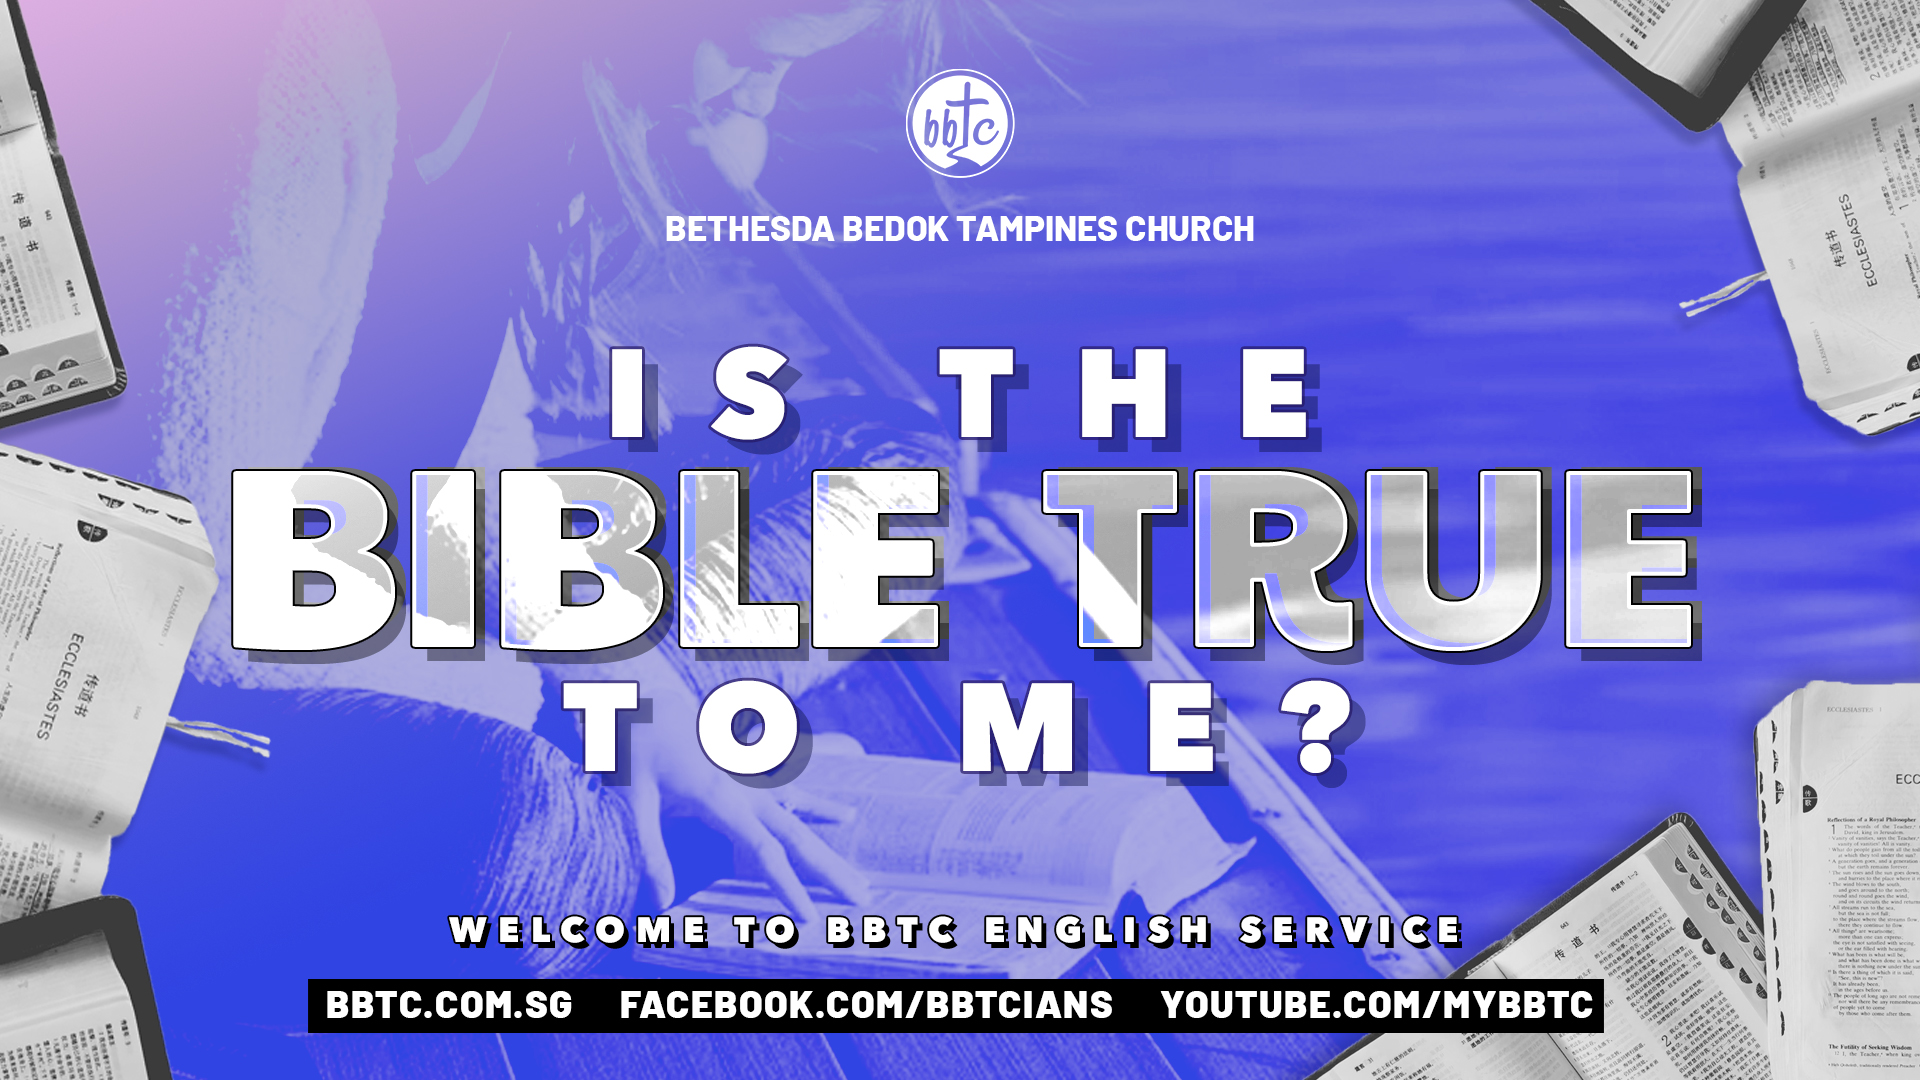 IS THE BIBLE TRUE TO ME?